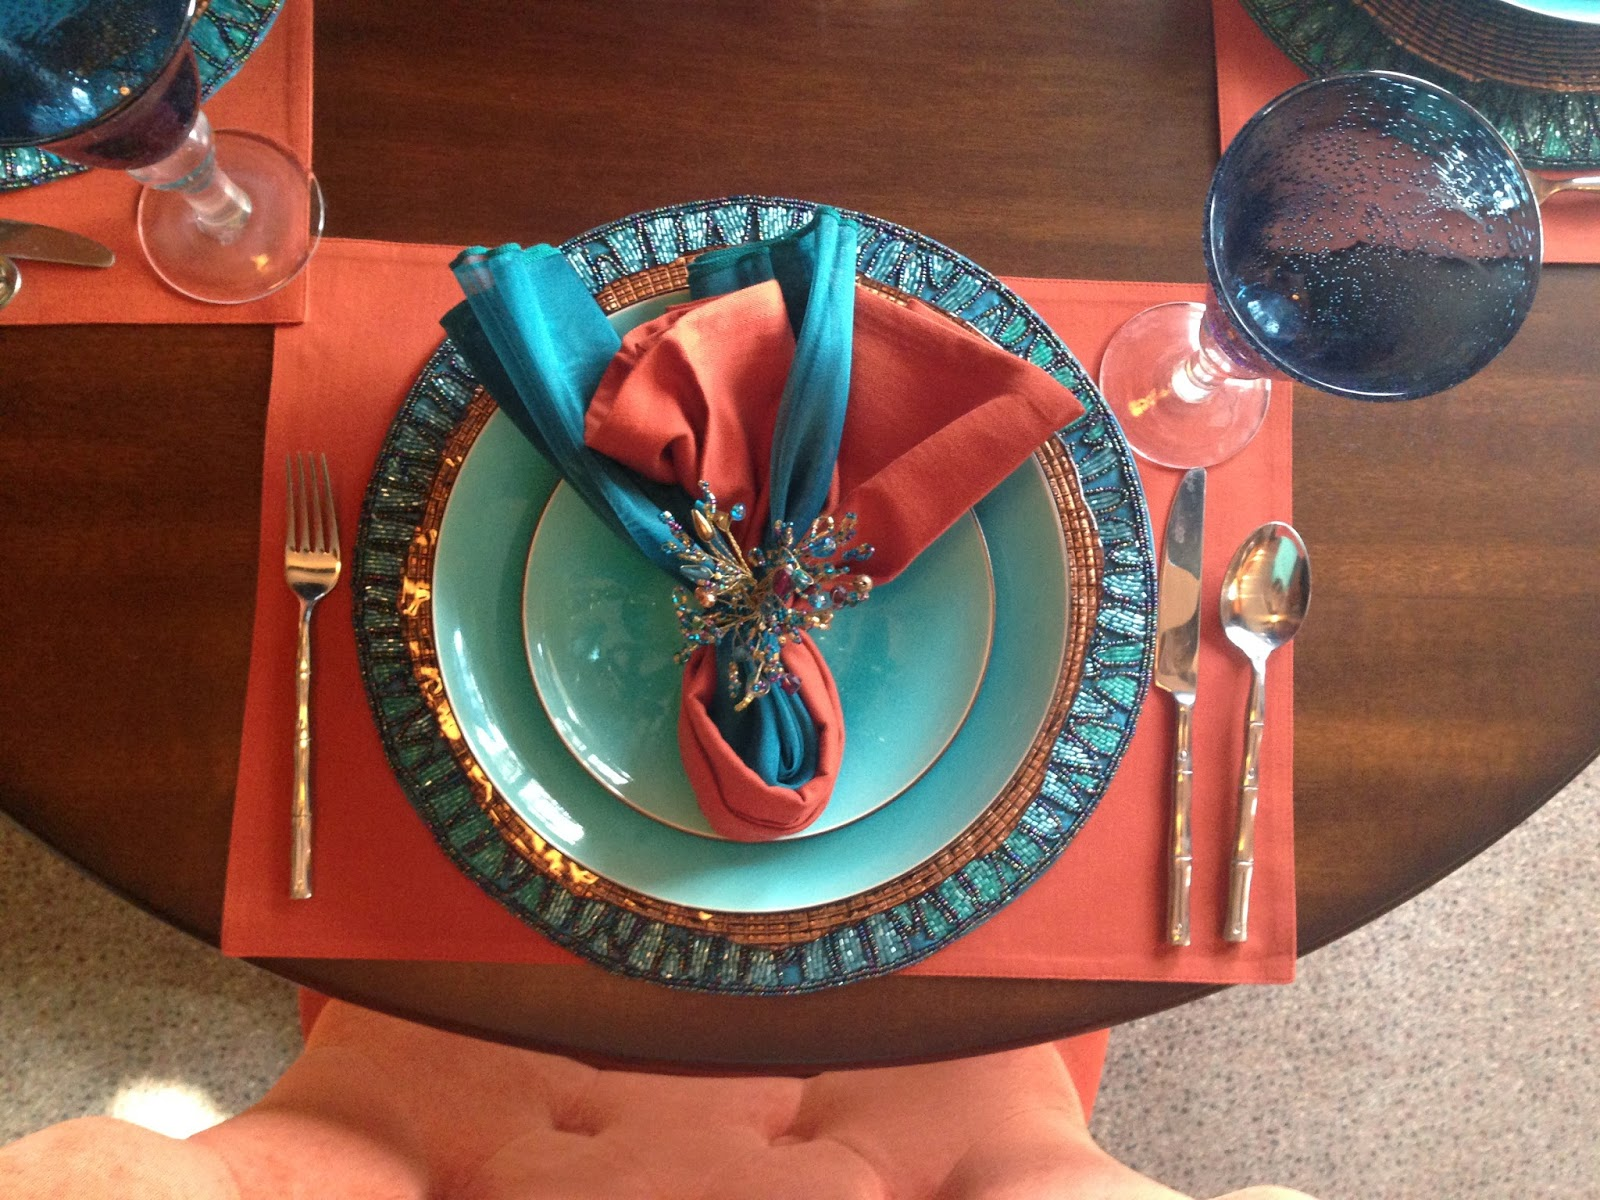 Kinds Of Table Settings & How To Set The Table Where To ...